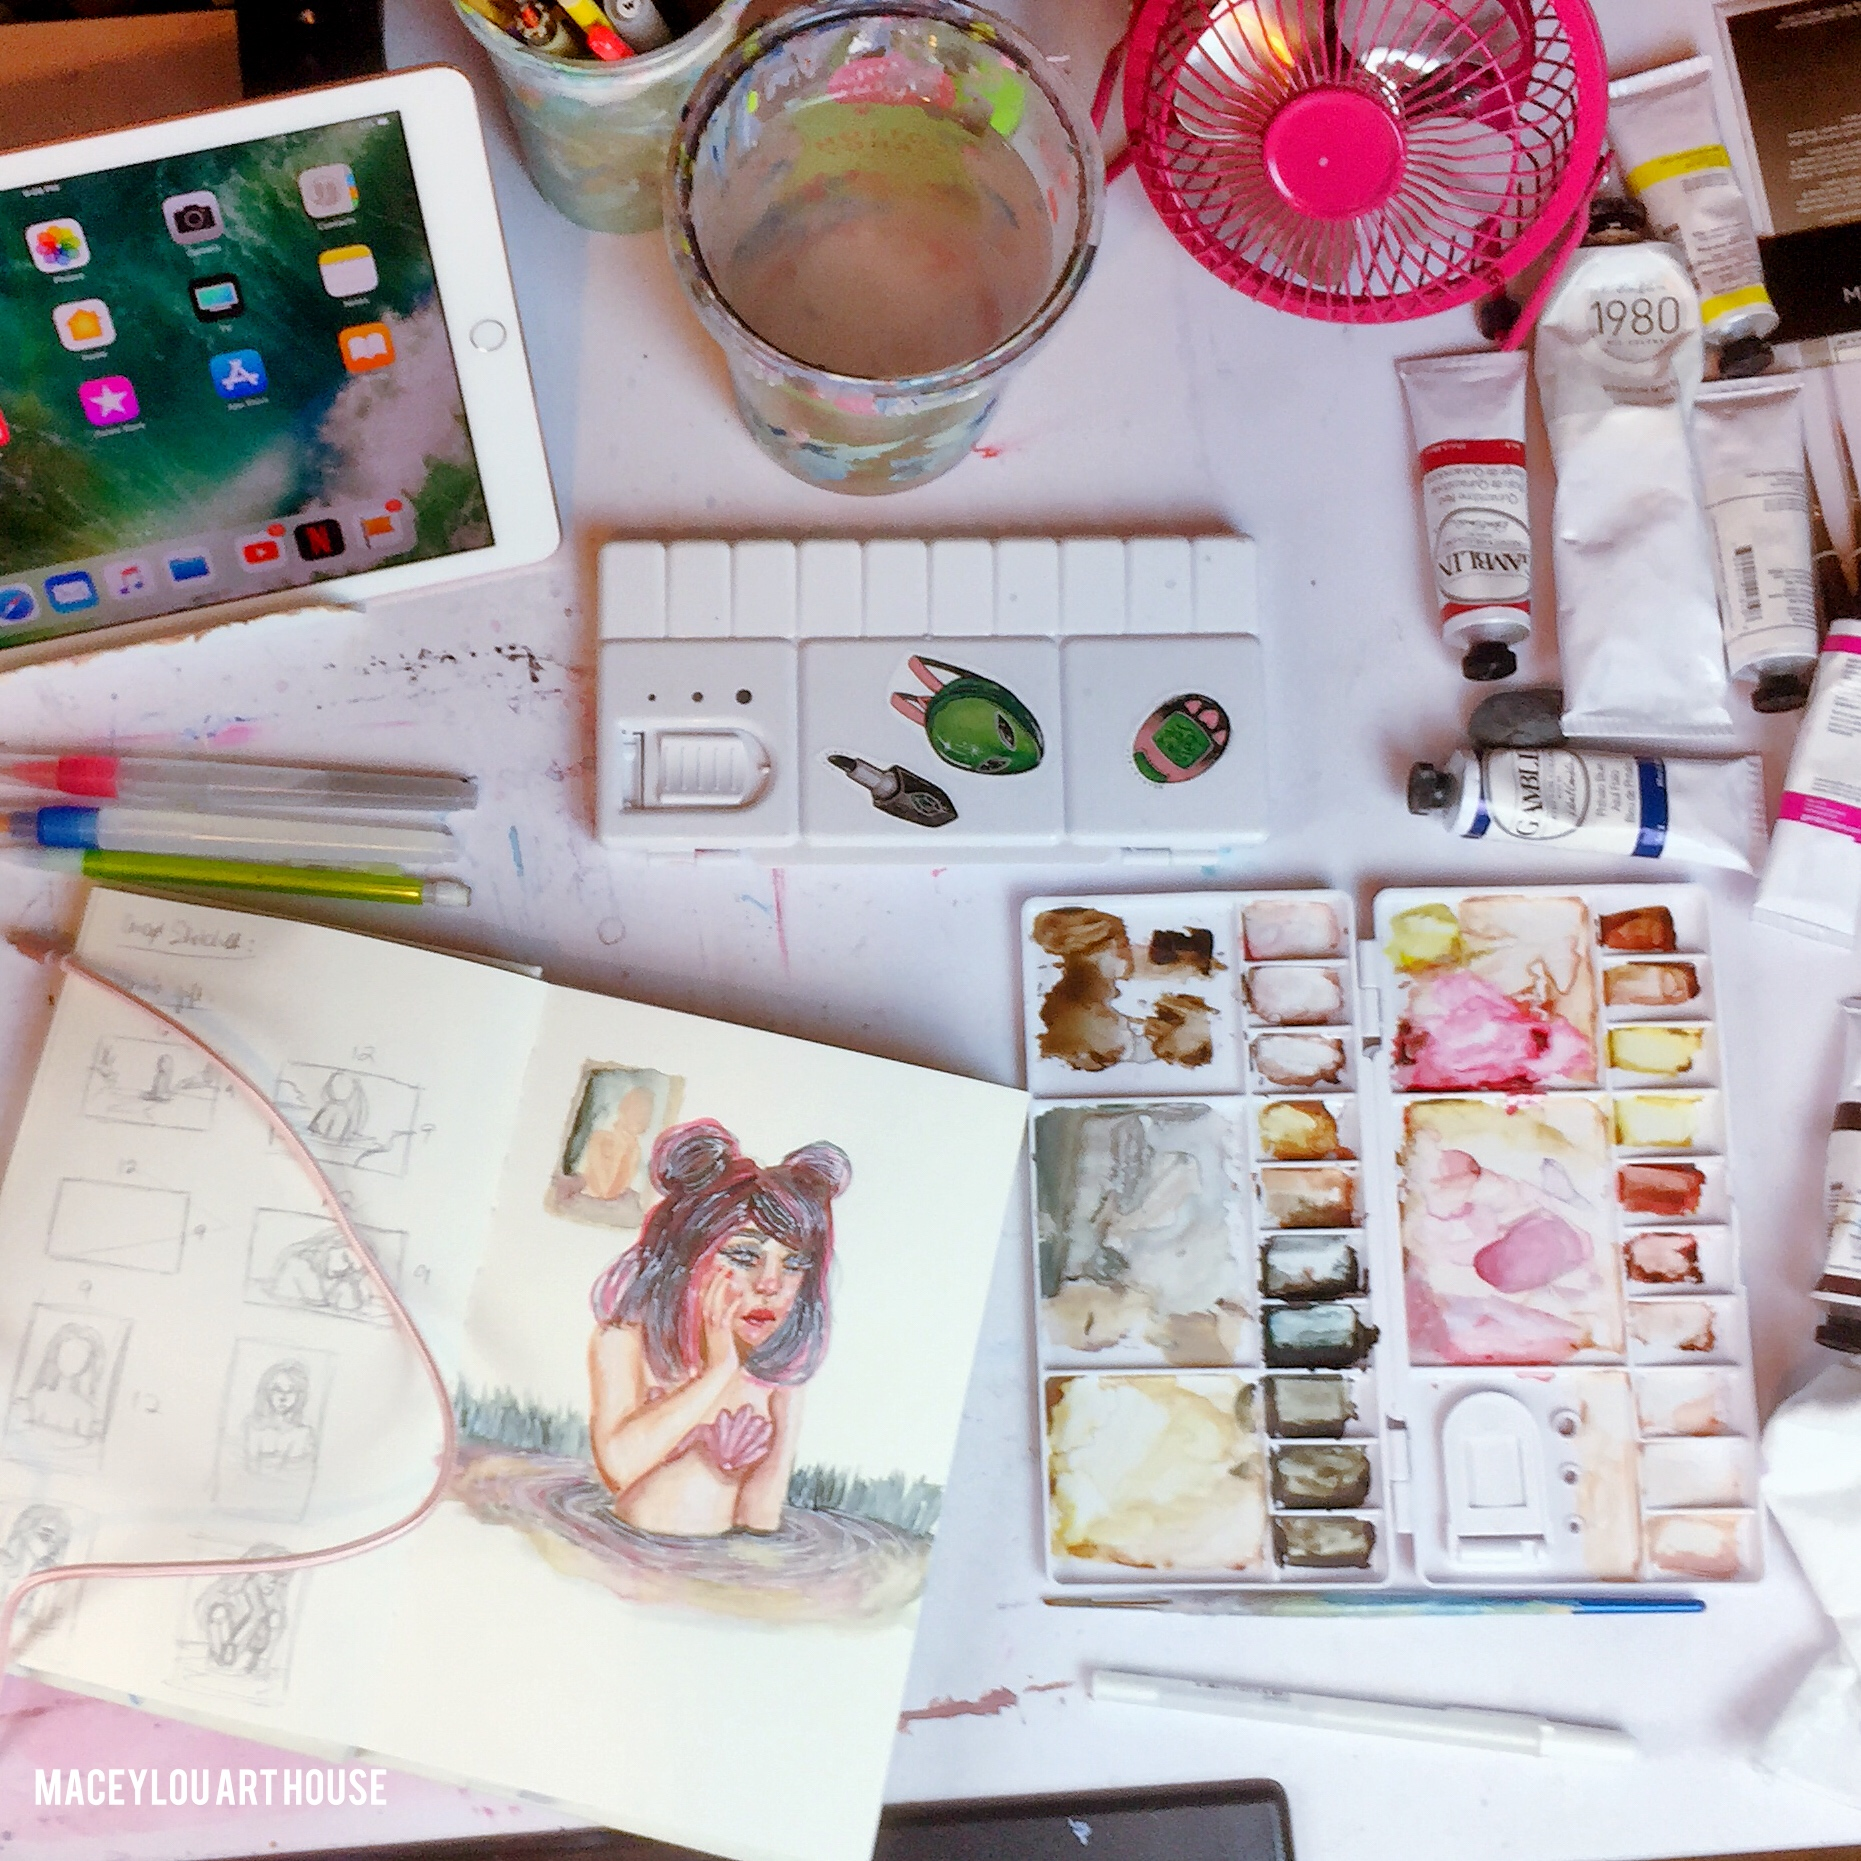 messy art studio desk with ipad and watercolor sketchbook